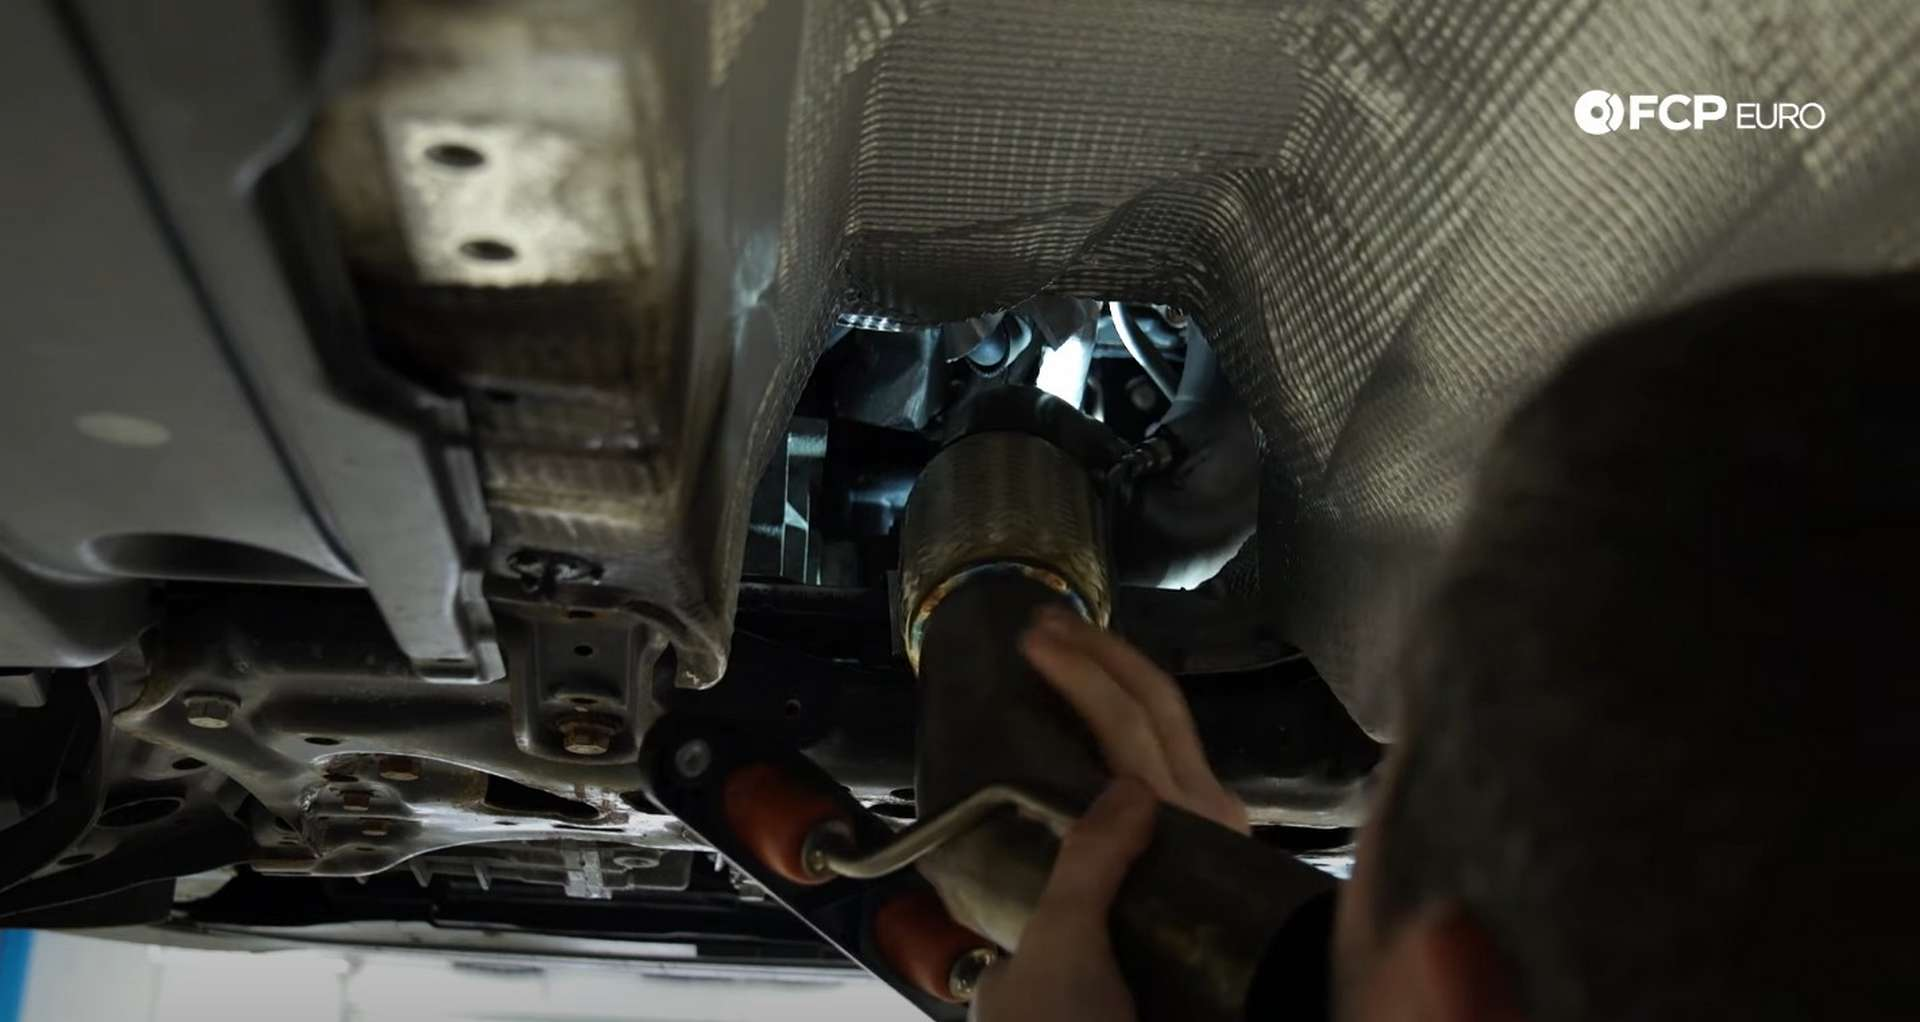 DIY MK7 VW GTI Turbocharger Upgrade fitting the downpipe into the engine bay